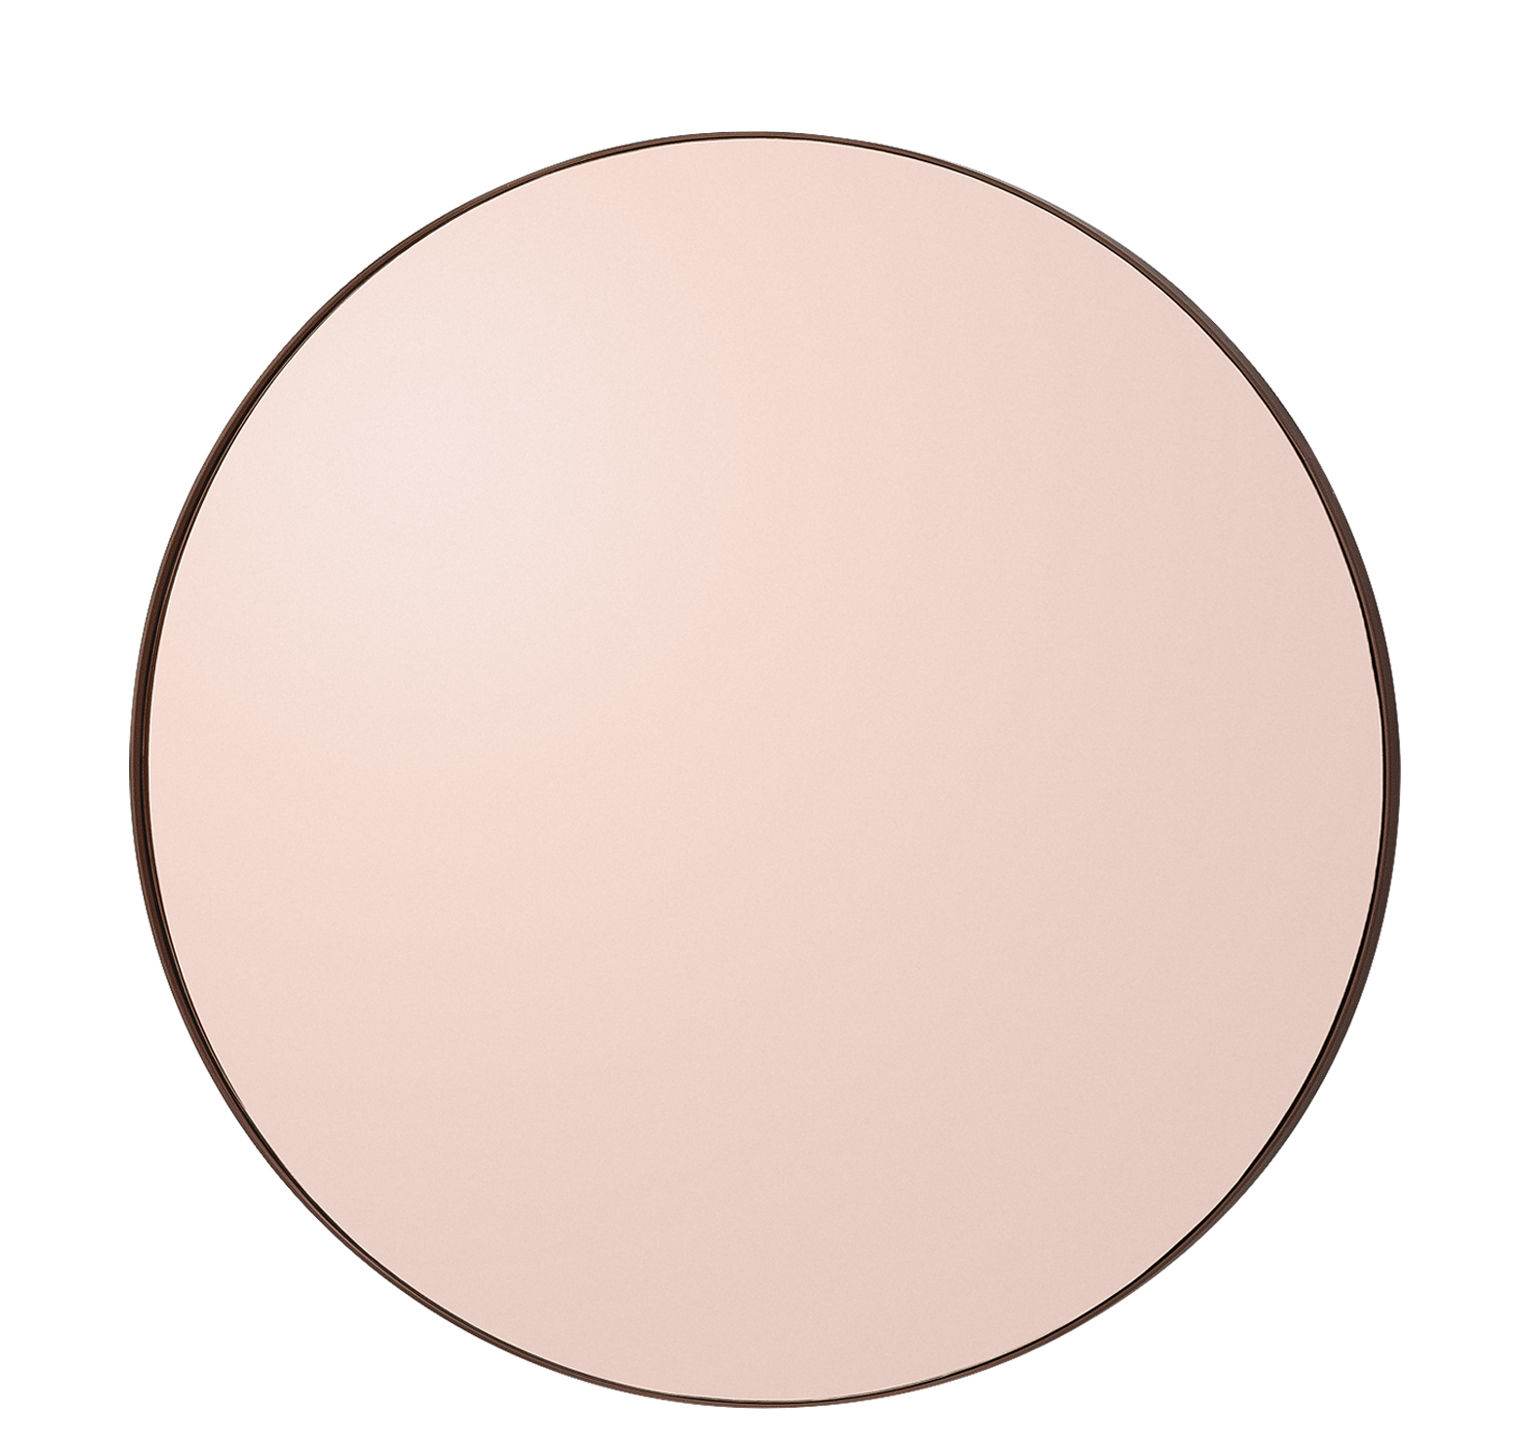 Decoration - Mirrors - Circum Small Wall mirror - Ø 70 cm by AYTM - Smoked pink - Glass, Painted MDF